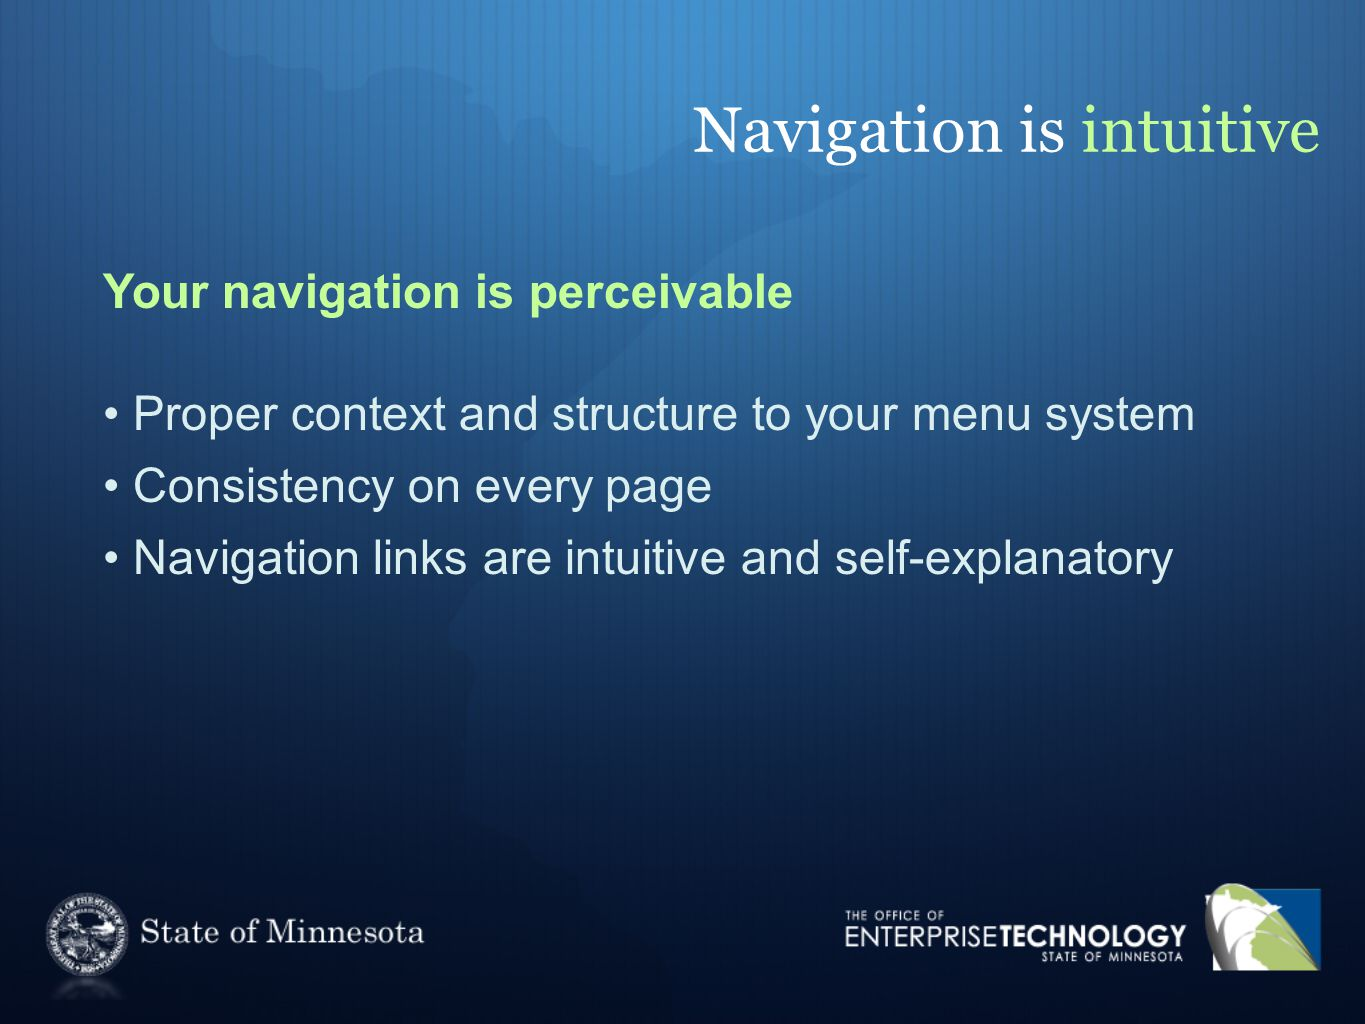 Navigation is intuitive Your navigation is perceivable Proper context and structure to your menu system Consistency on every page Navigation links are